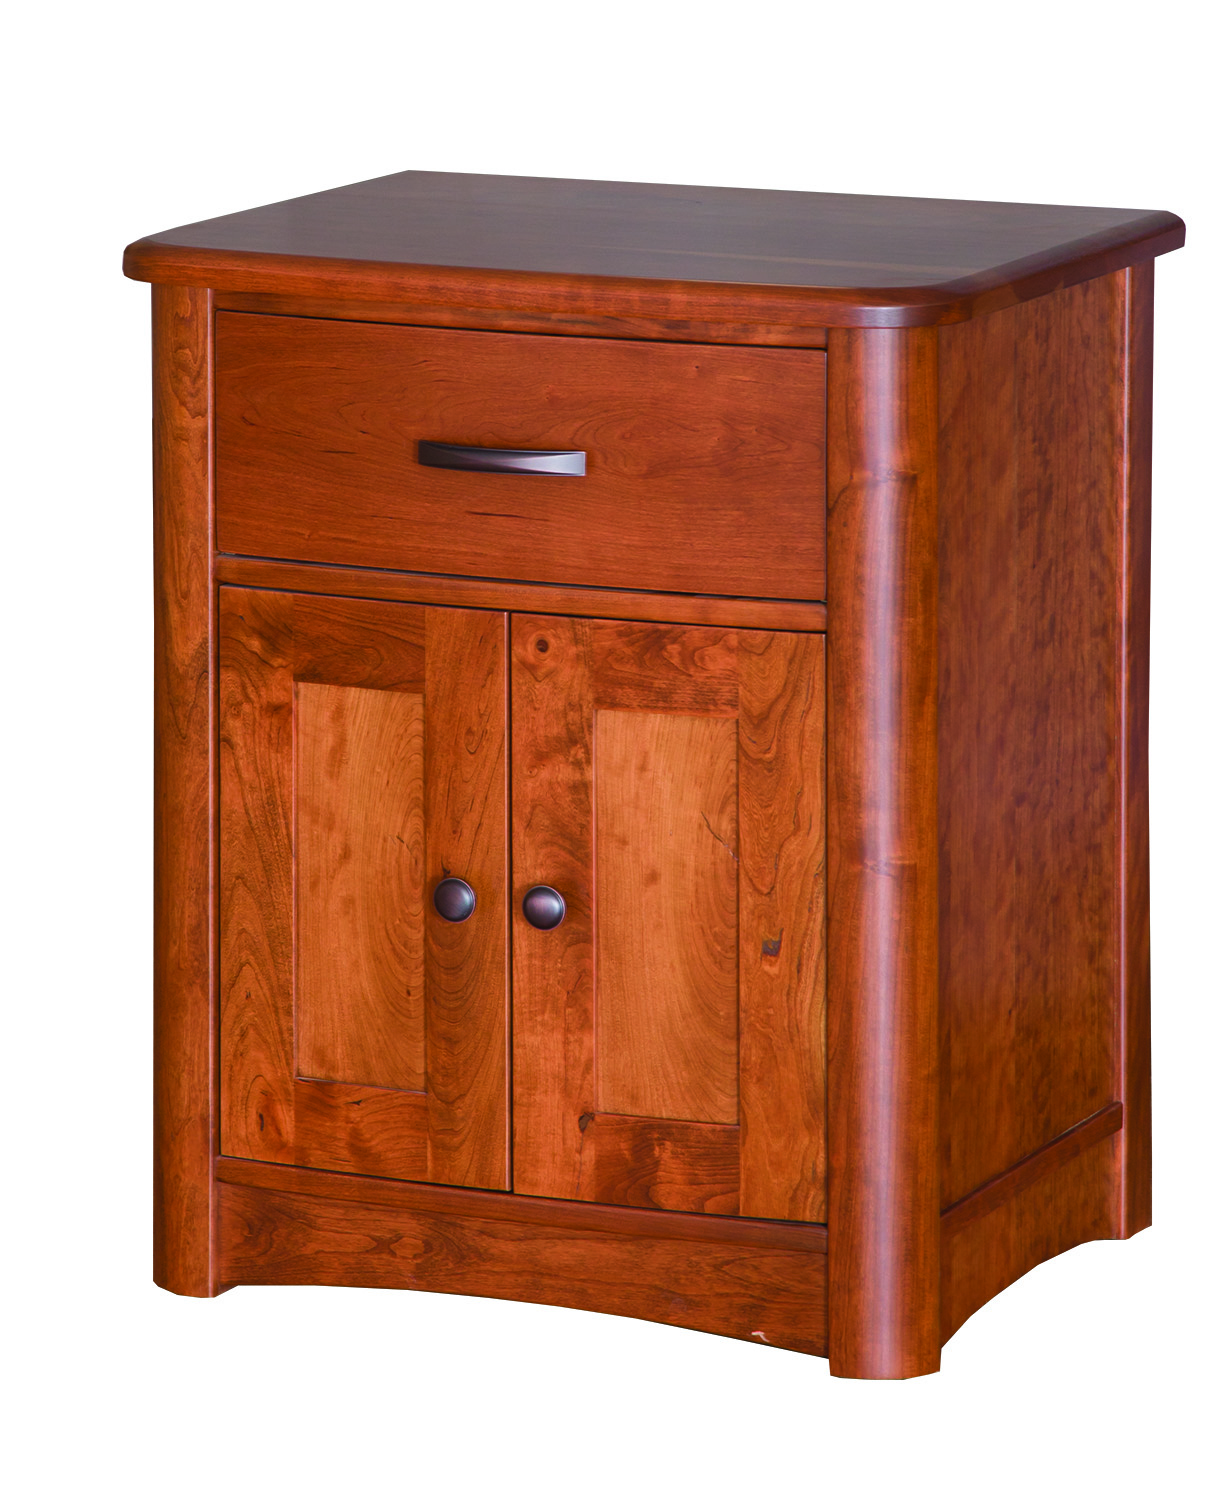 1-Drawer/2-Door Meridian Nightstand Product